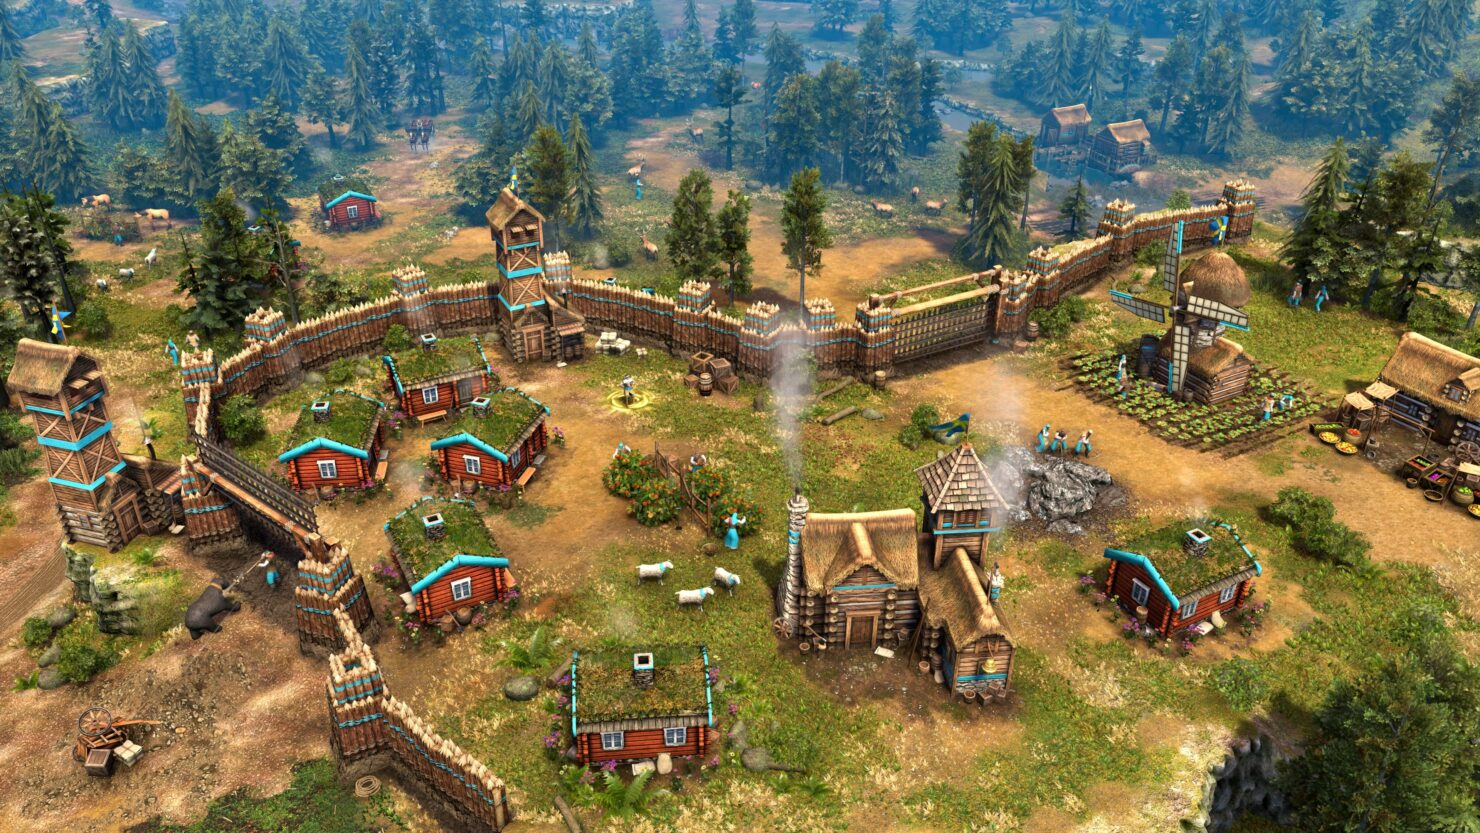 age-of-empires-iii-definitive-edition-preview-05-asset-9